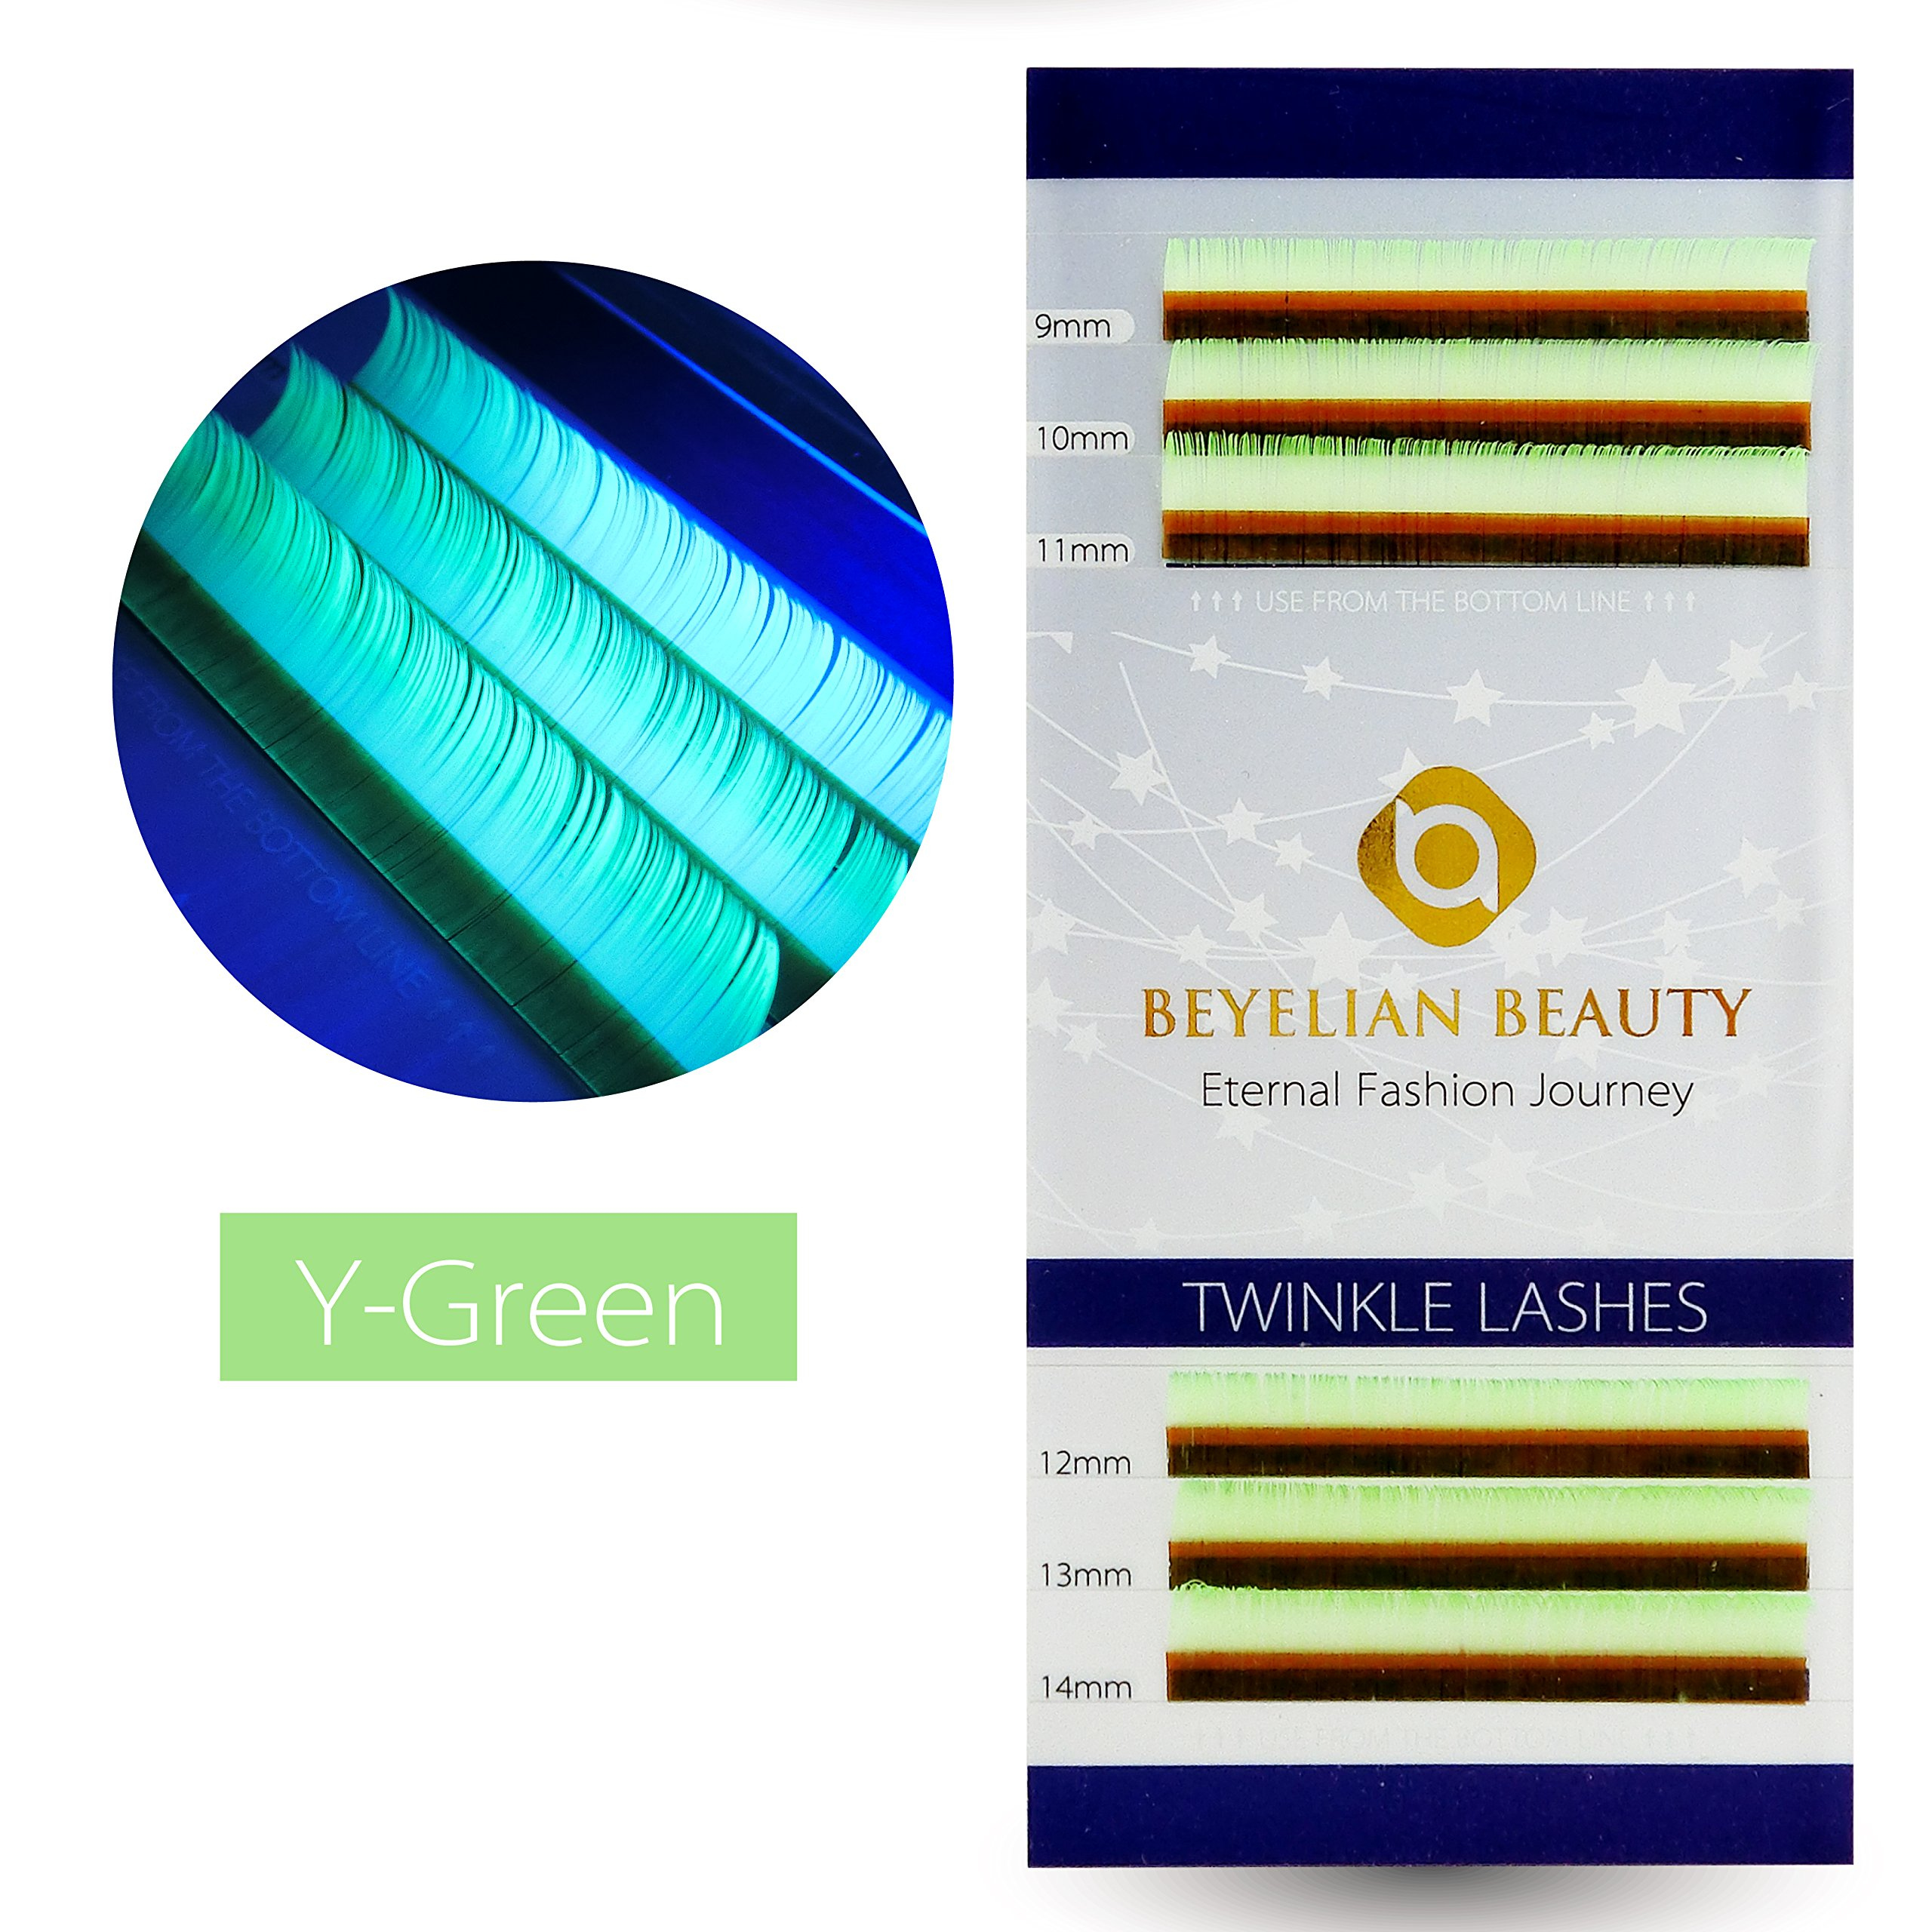 86b7b4dd02b BEYELIAN Twinkle Lashes 0.07mm Thickness Y-Green Color Mix Length Eyelash  Extensions Colored Lashes